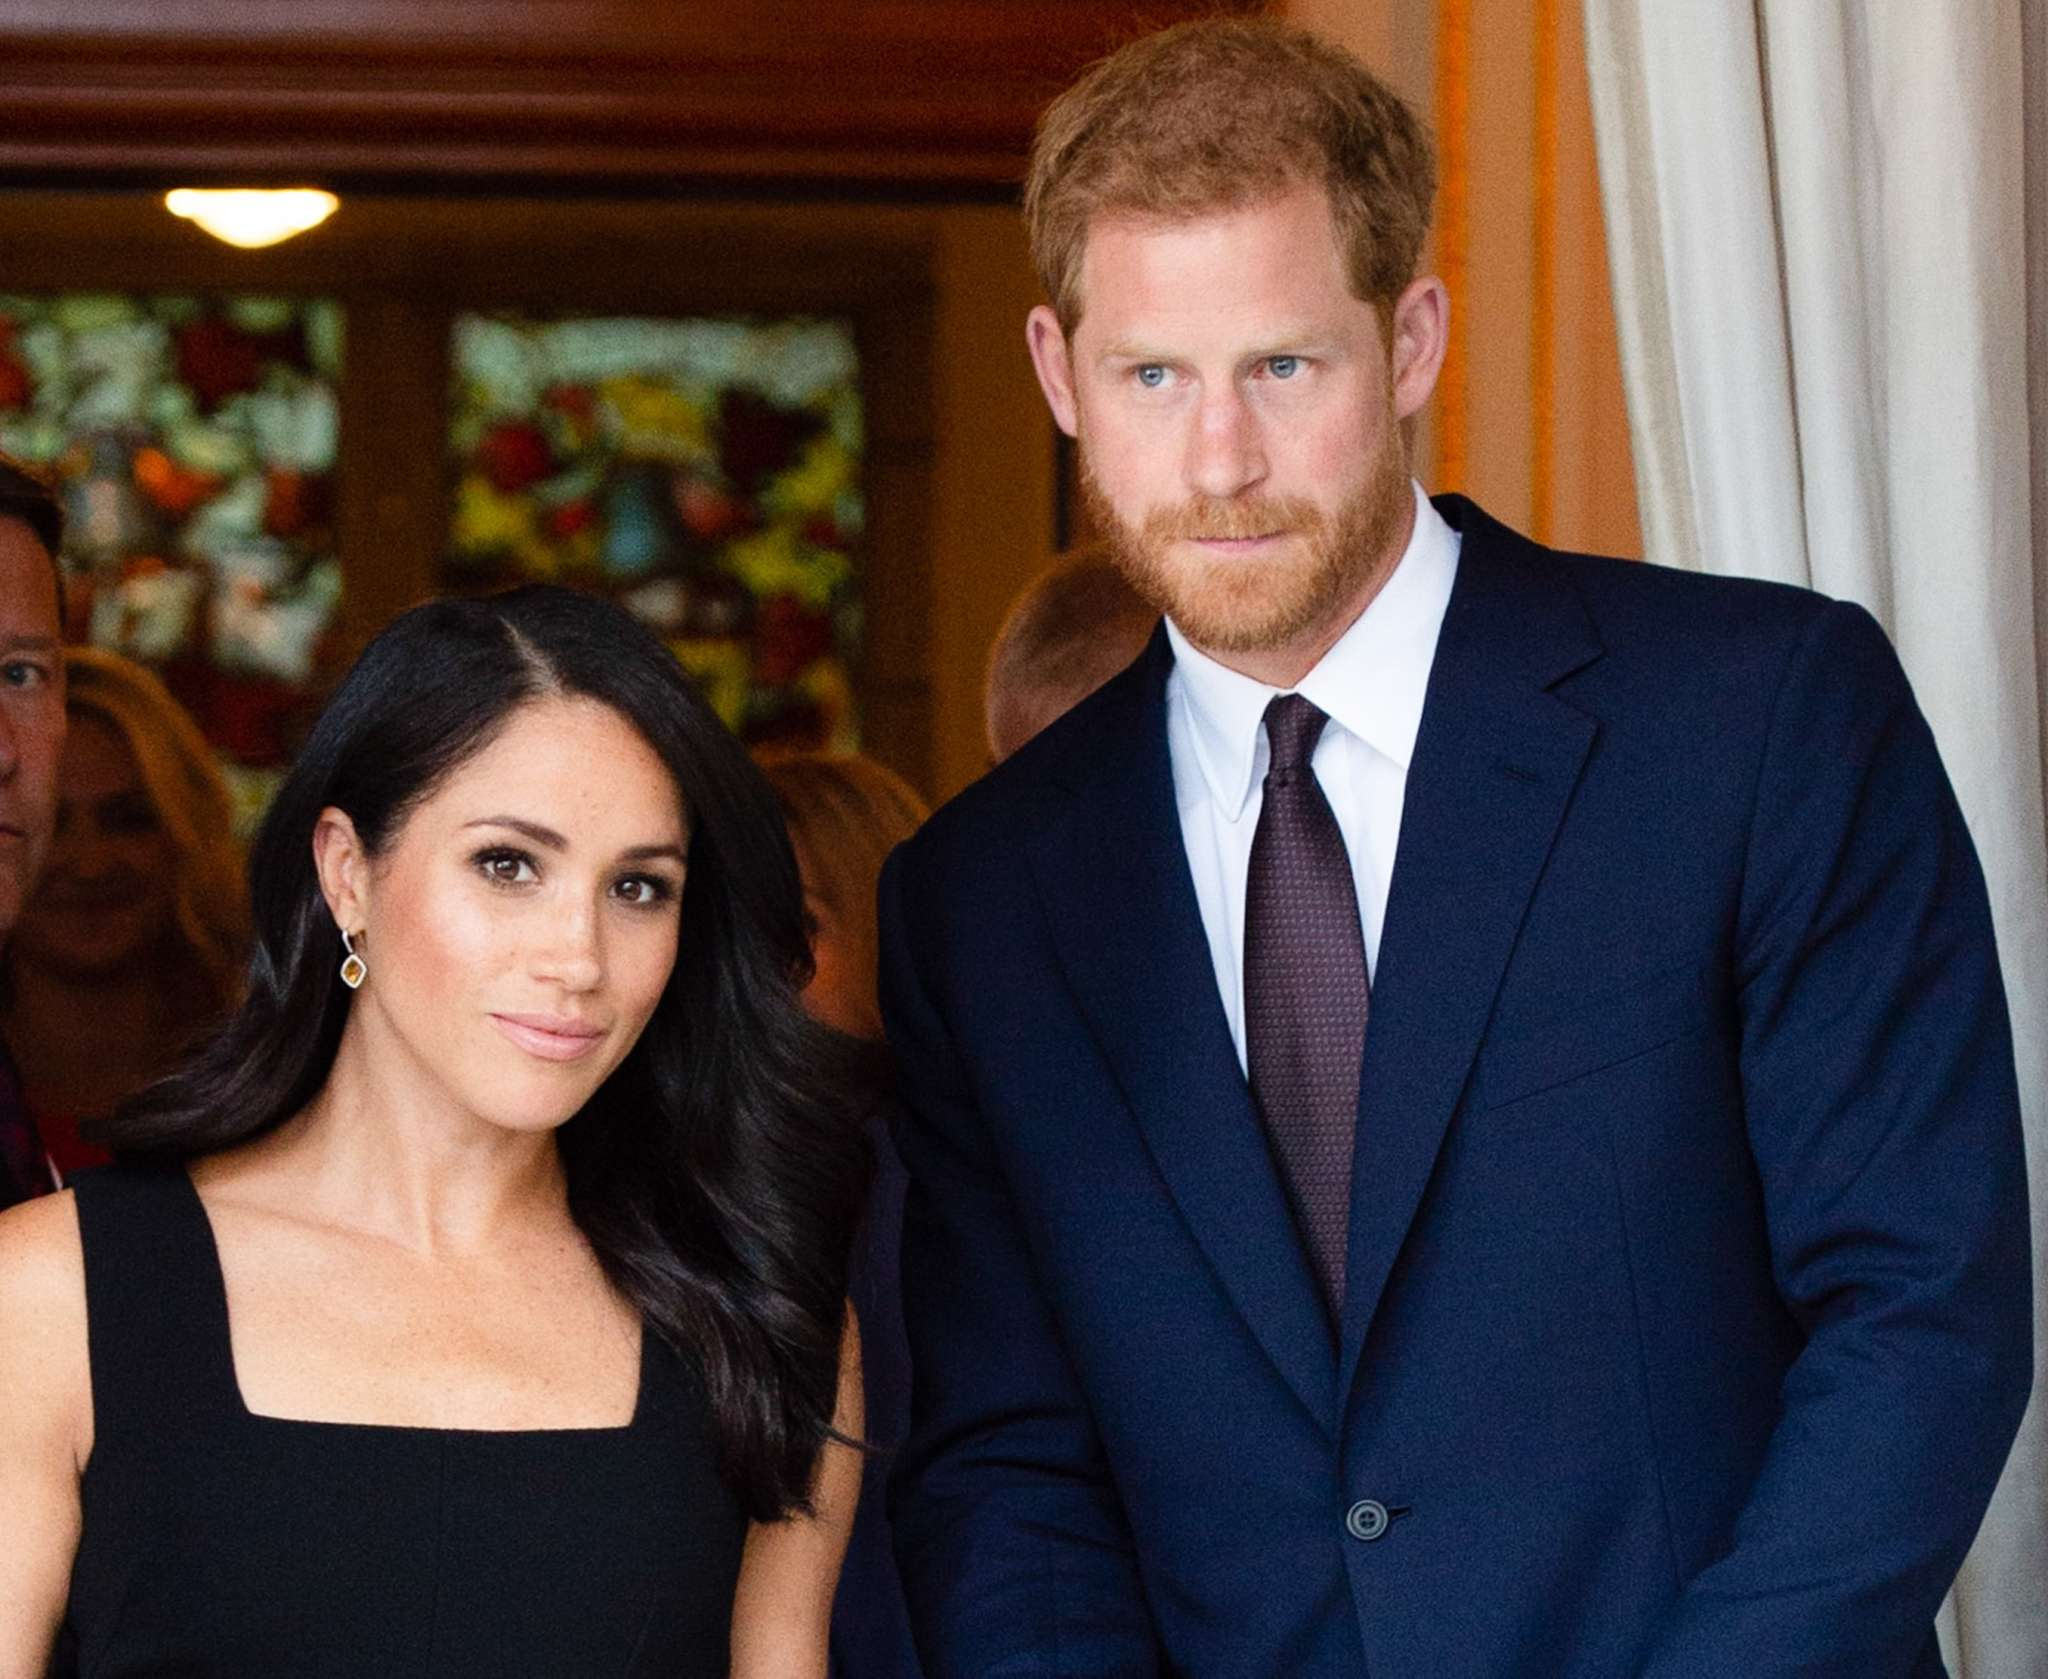 prince-harry-and-meghan-markle-reportedly-just-trying-to-keep-the-peace-with-the-royals-after-tumultuous-year